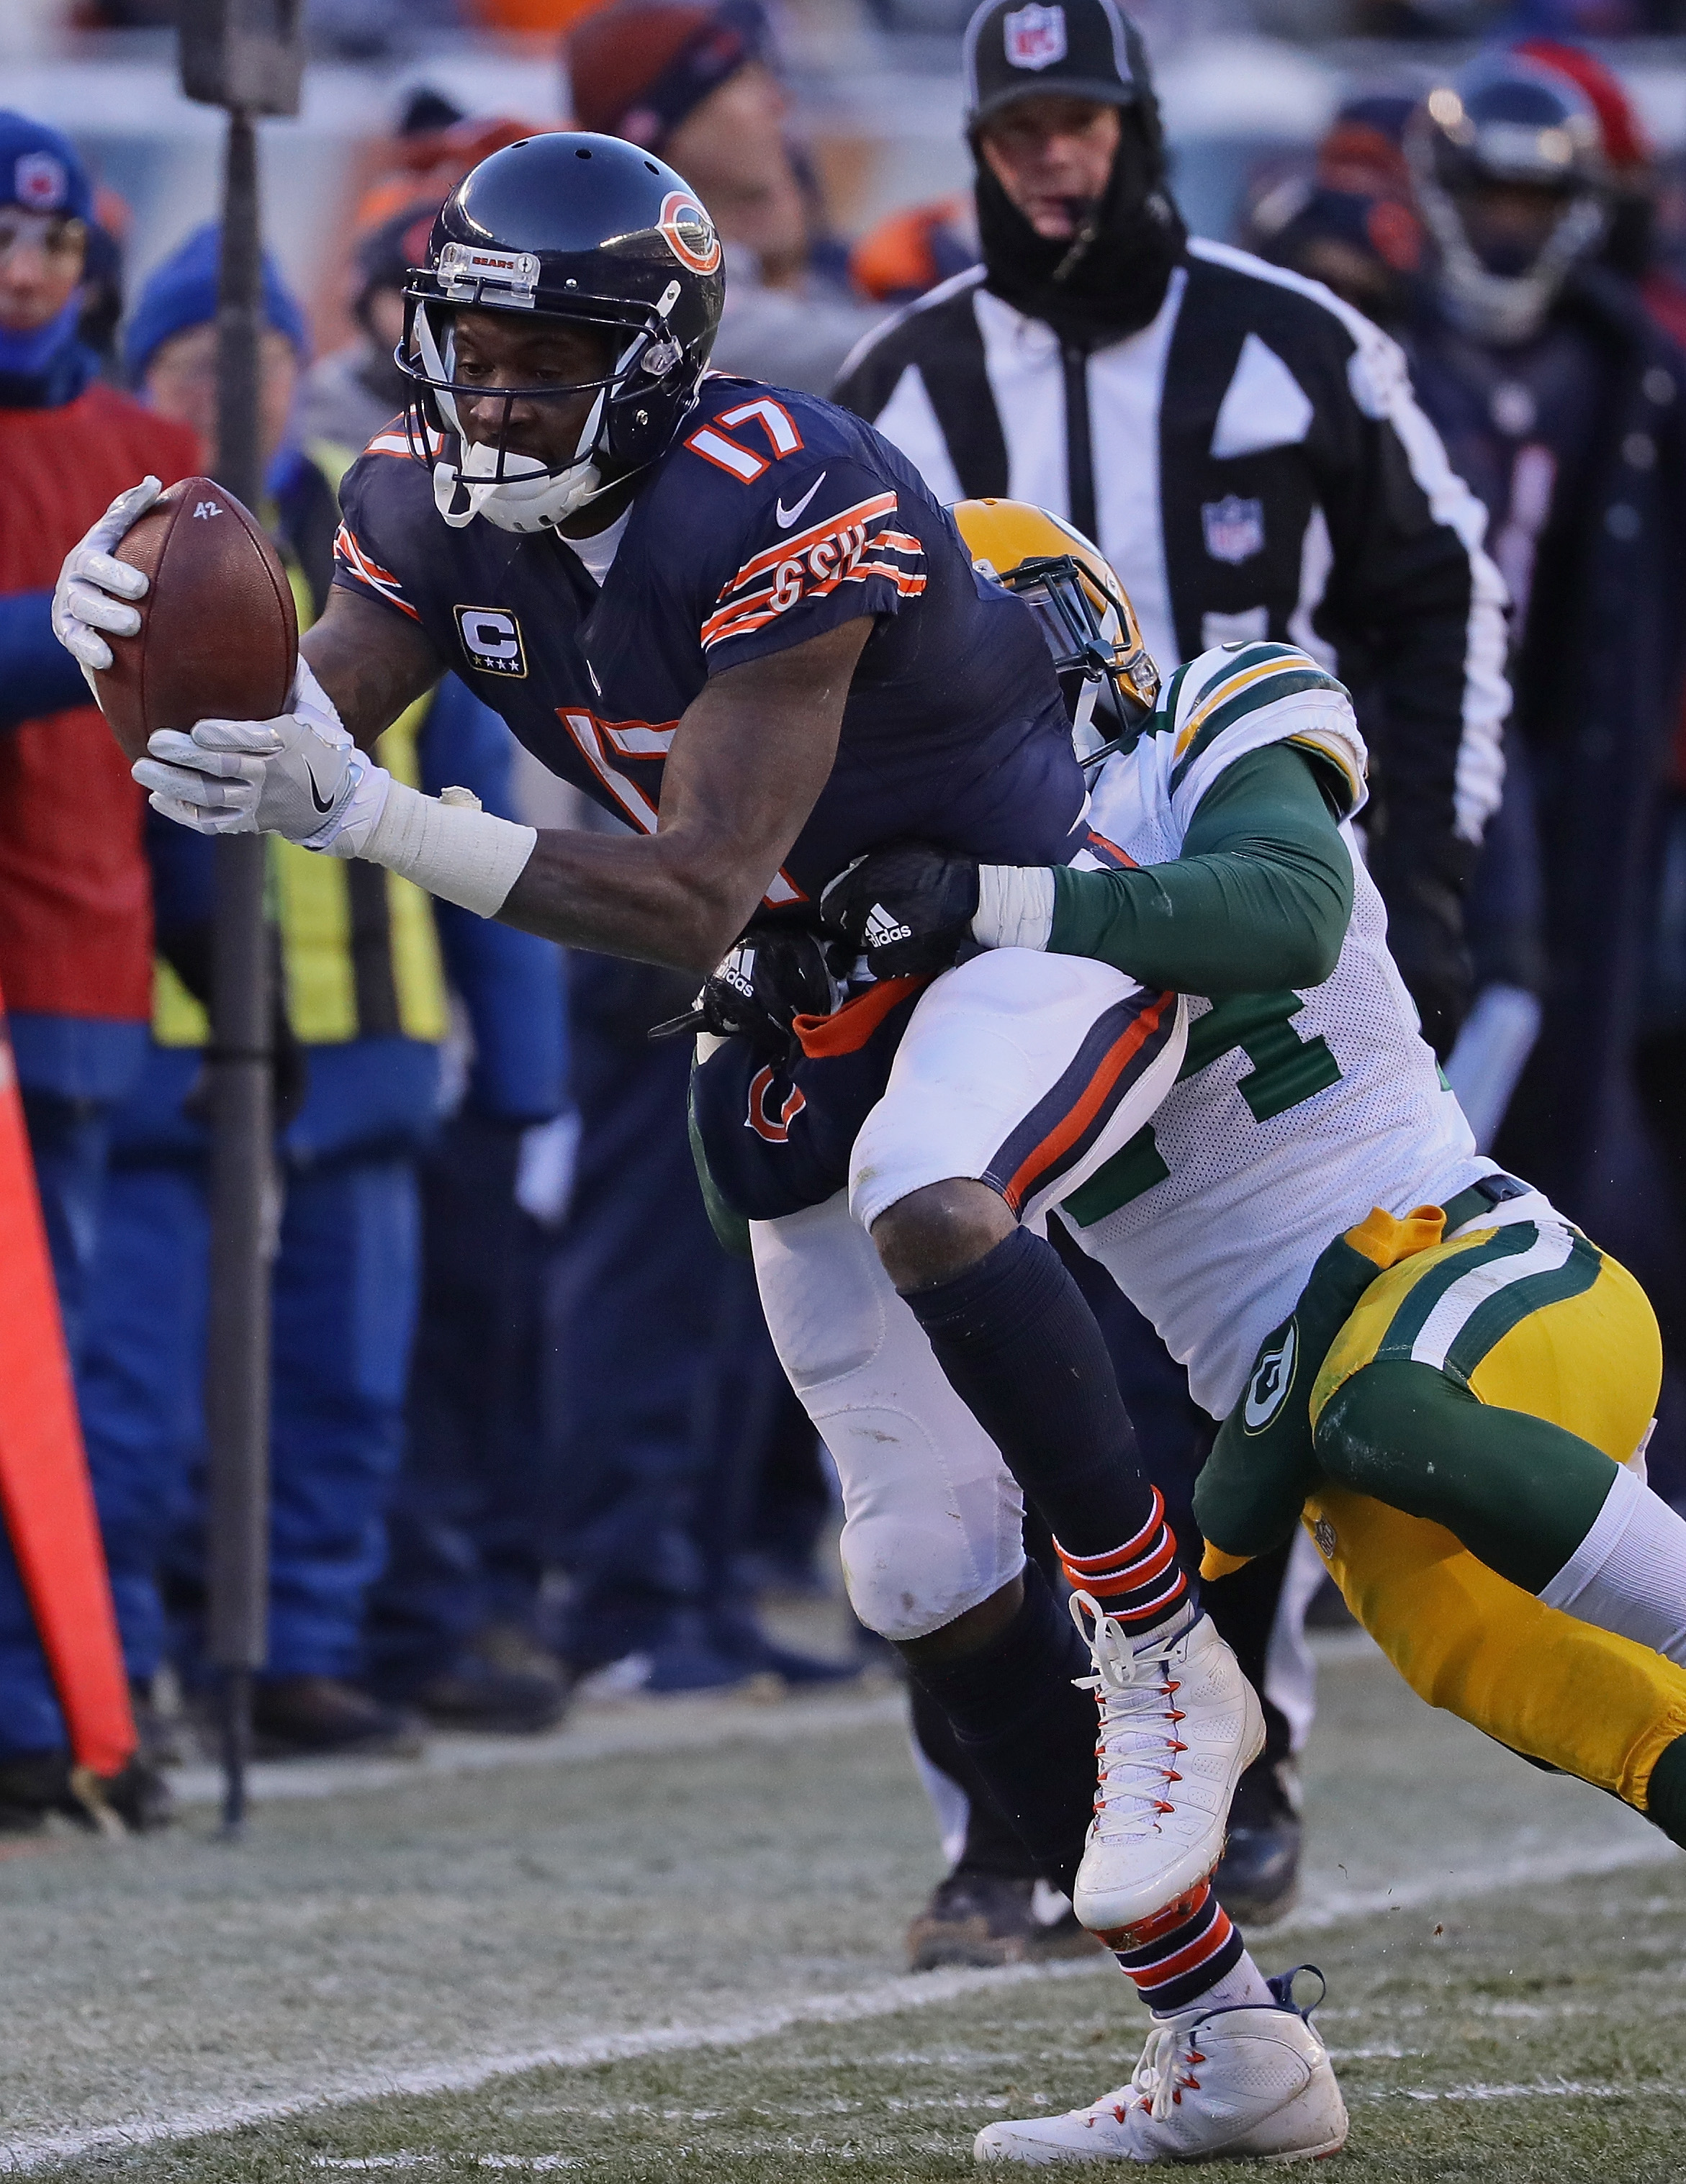 Alshon Jeffery of the Chicago Bears is among the intriguing receivers who could be hitting the open market.  (Photo by Jonathan Daniel/Getty Images)